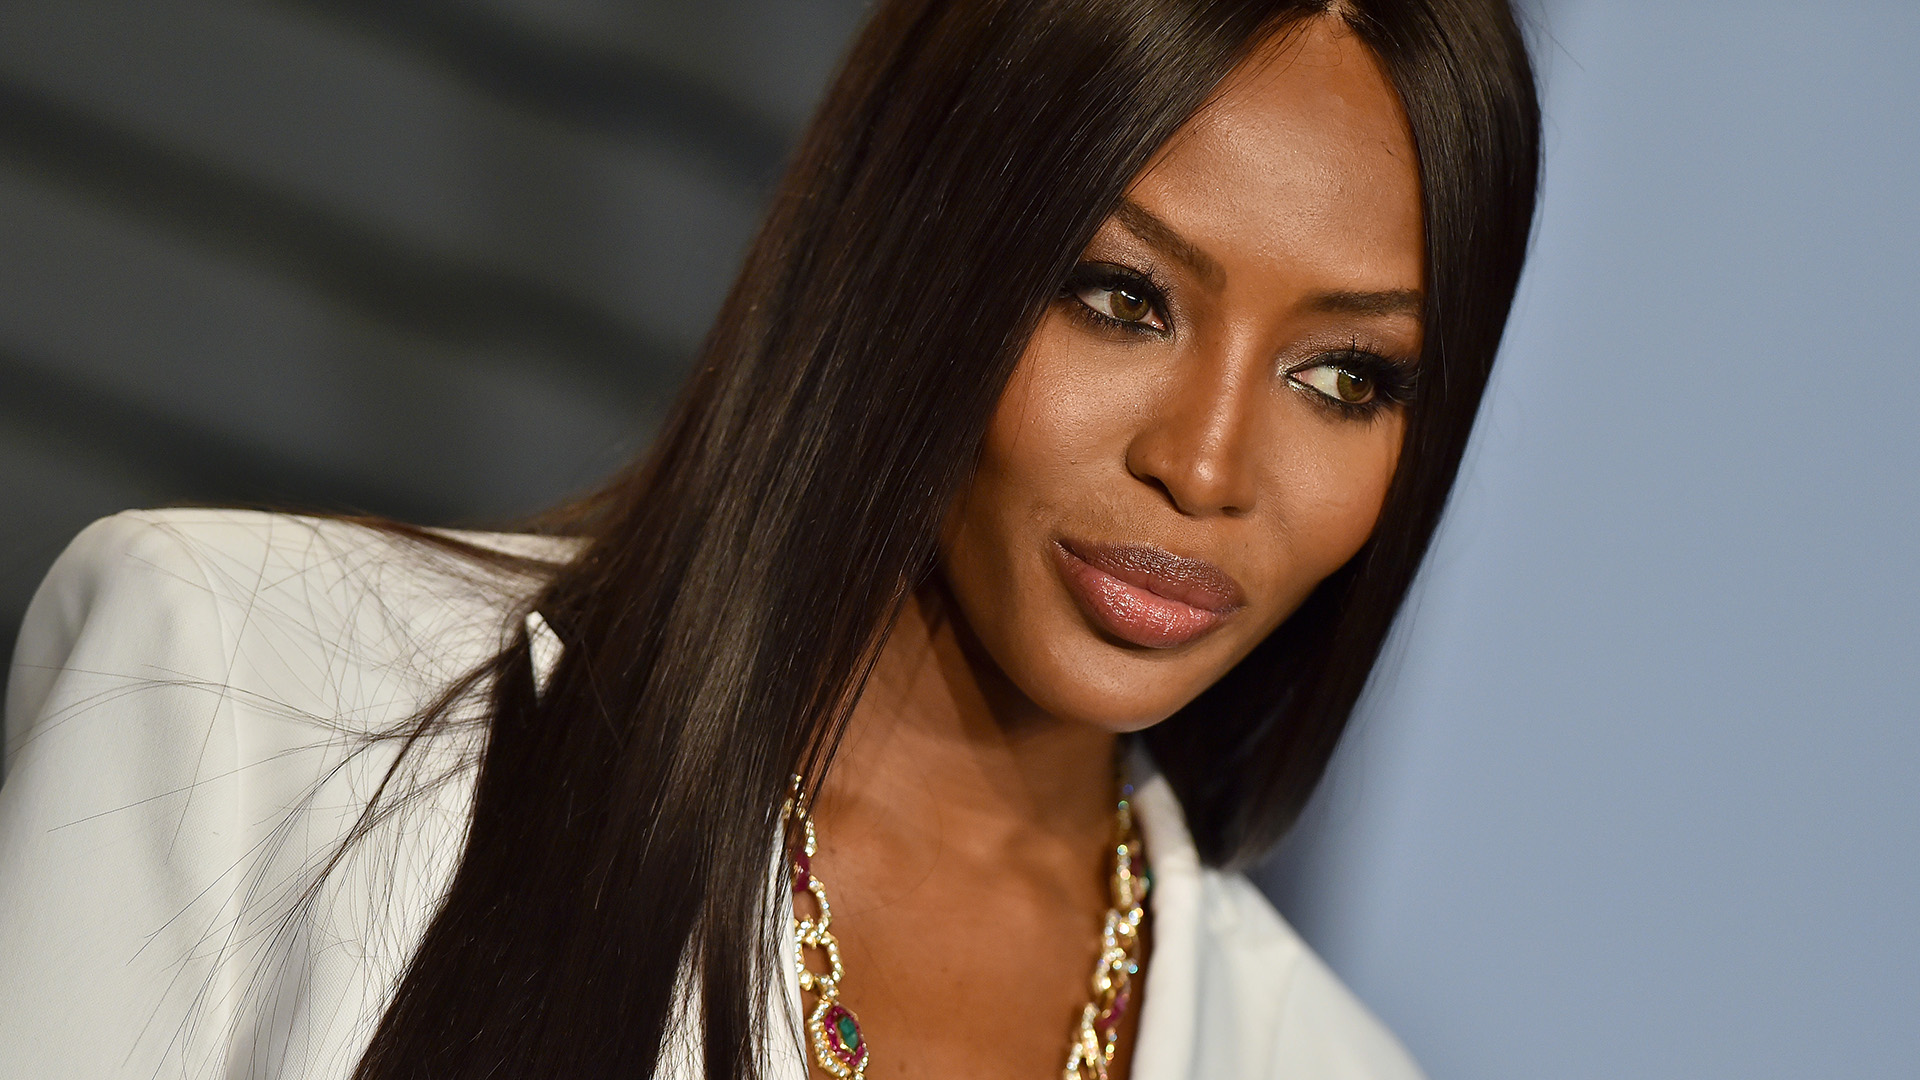 Naomi Campbell to be Honored During New York Fashion Week